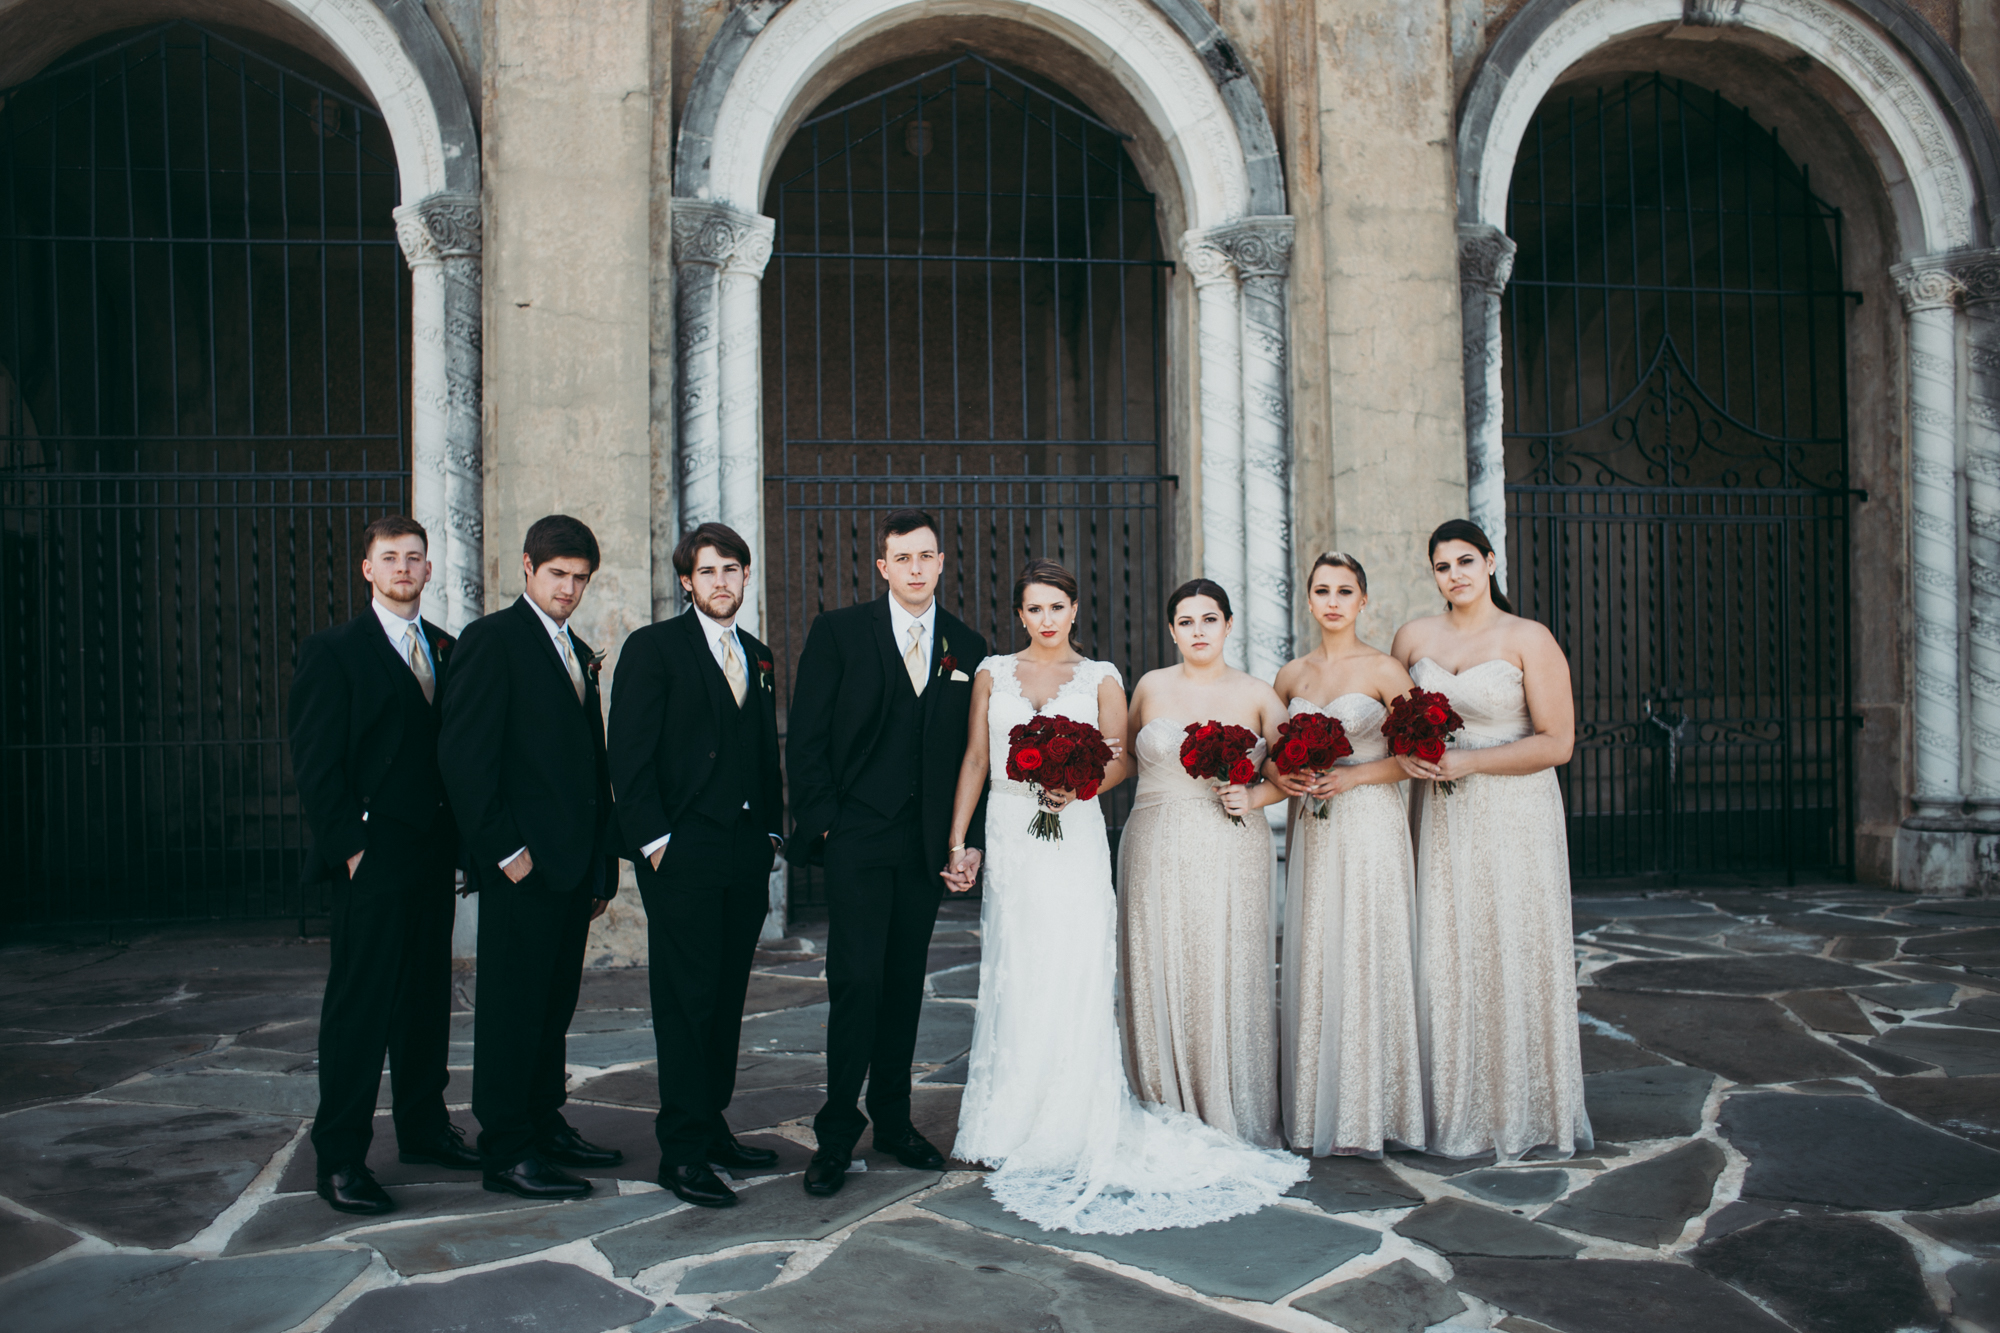 Bridal party standing together in a line looking at the camera. Bridesmaid are holding red rose bouquets.